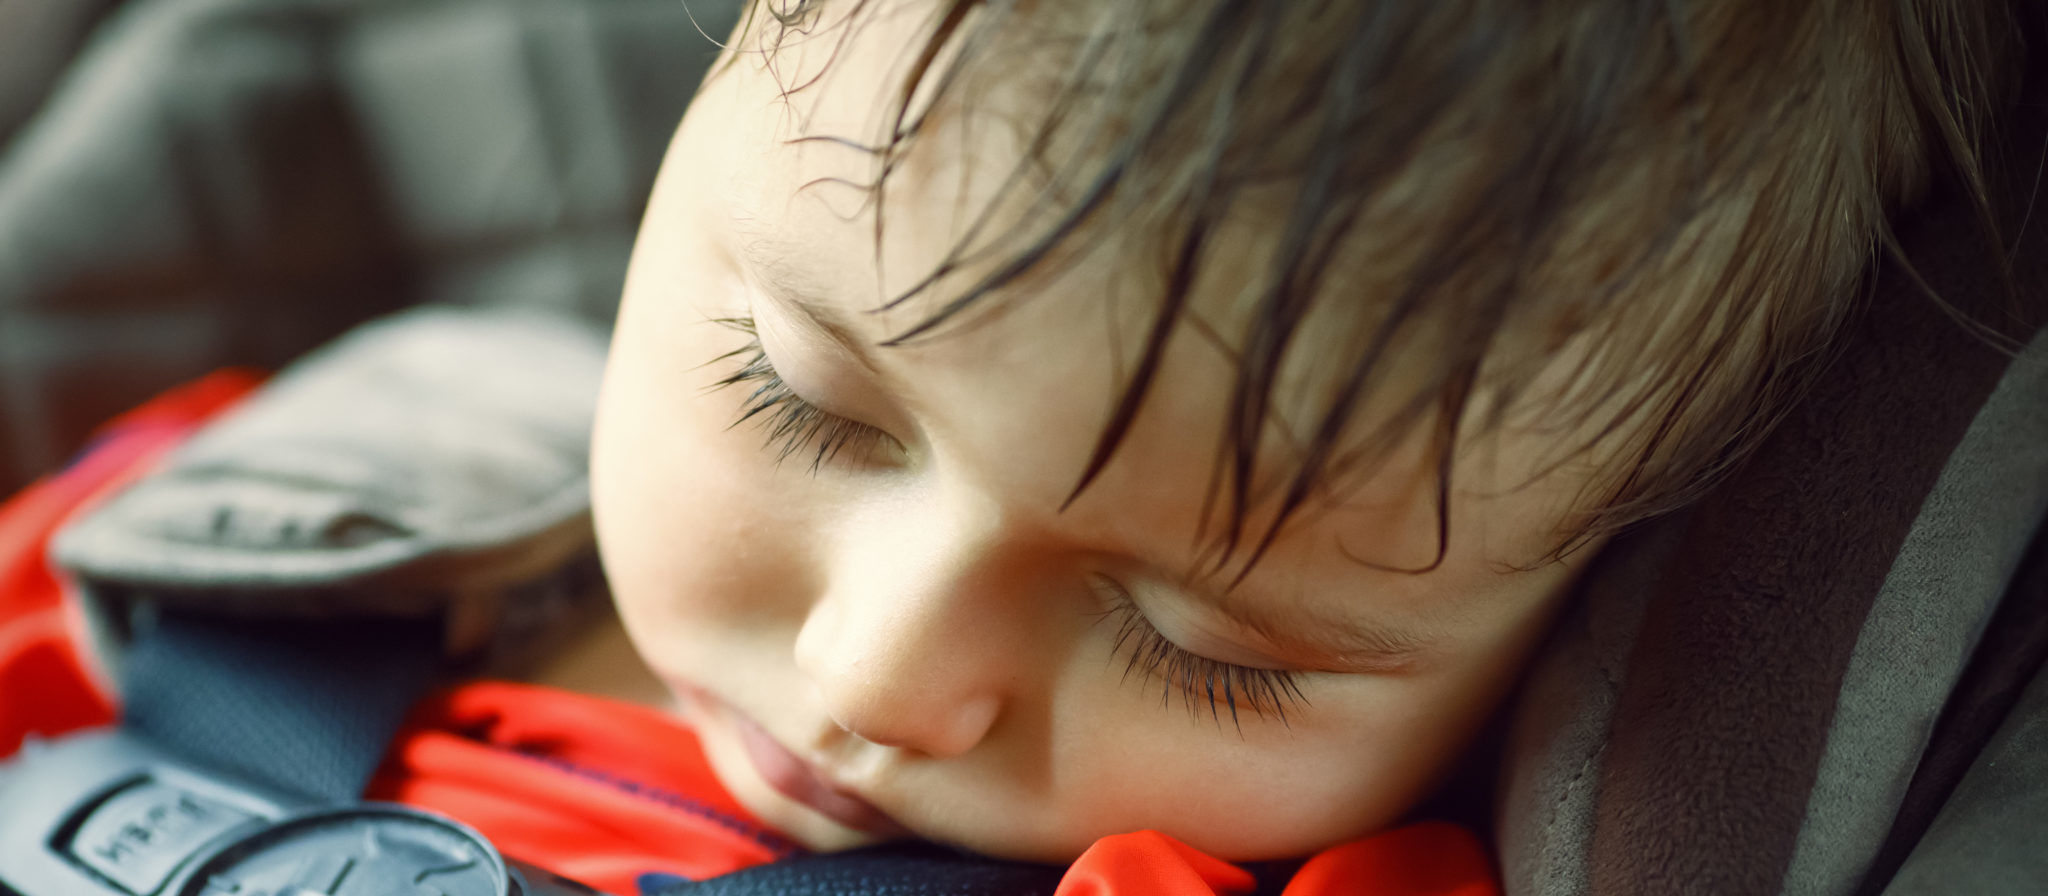 A sleeping baby is the best possible scenario for any long car ride.